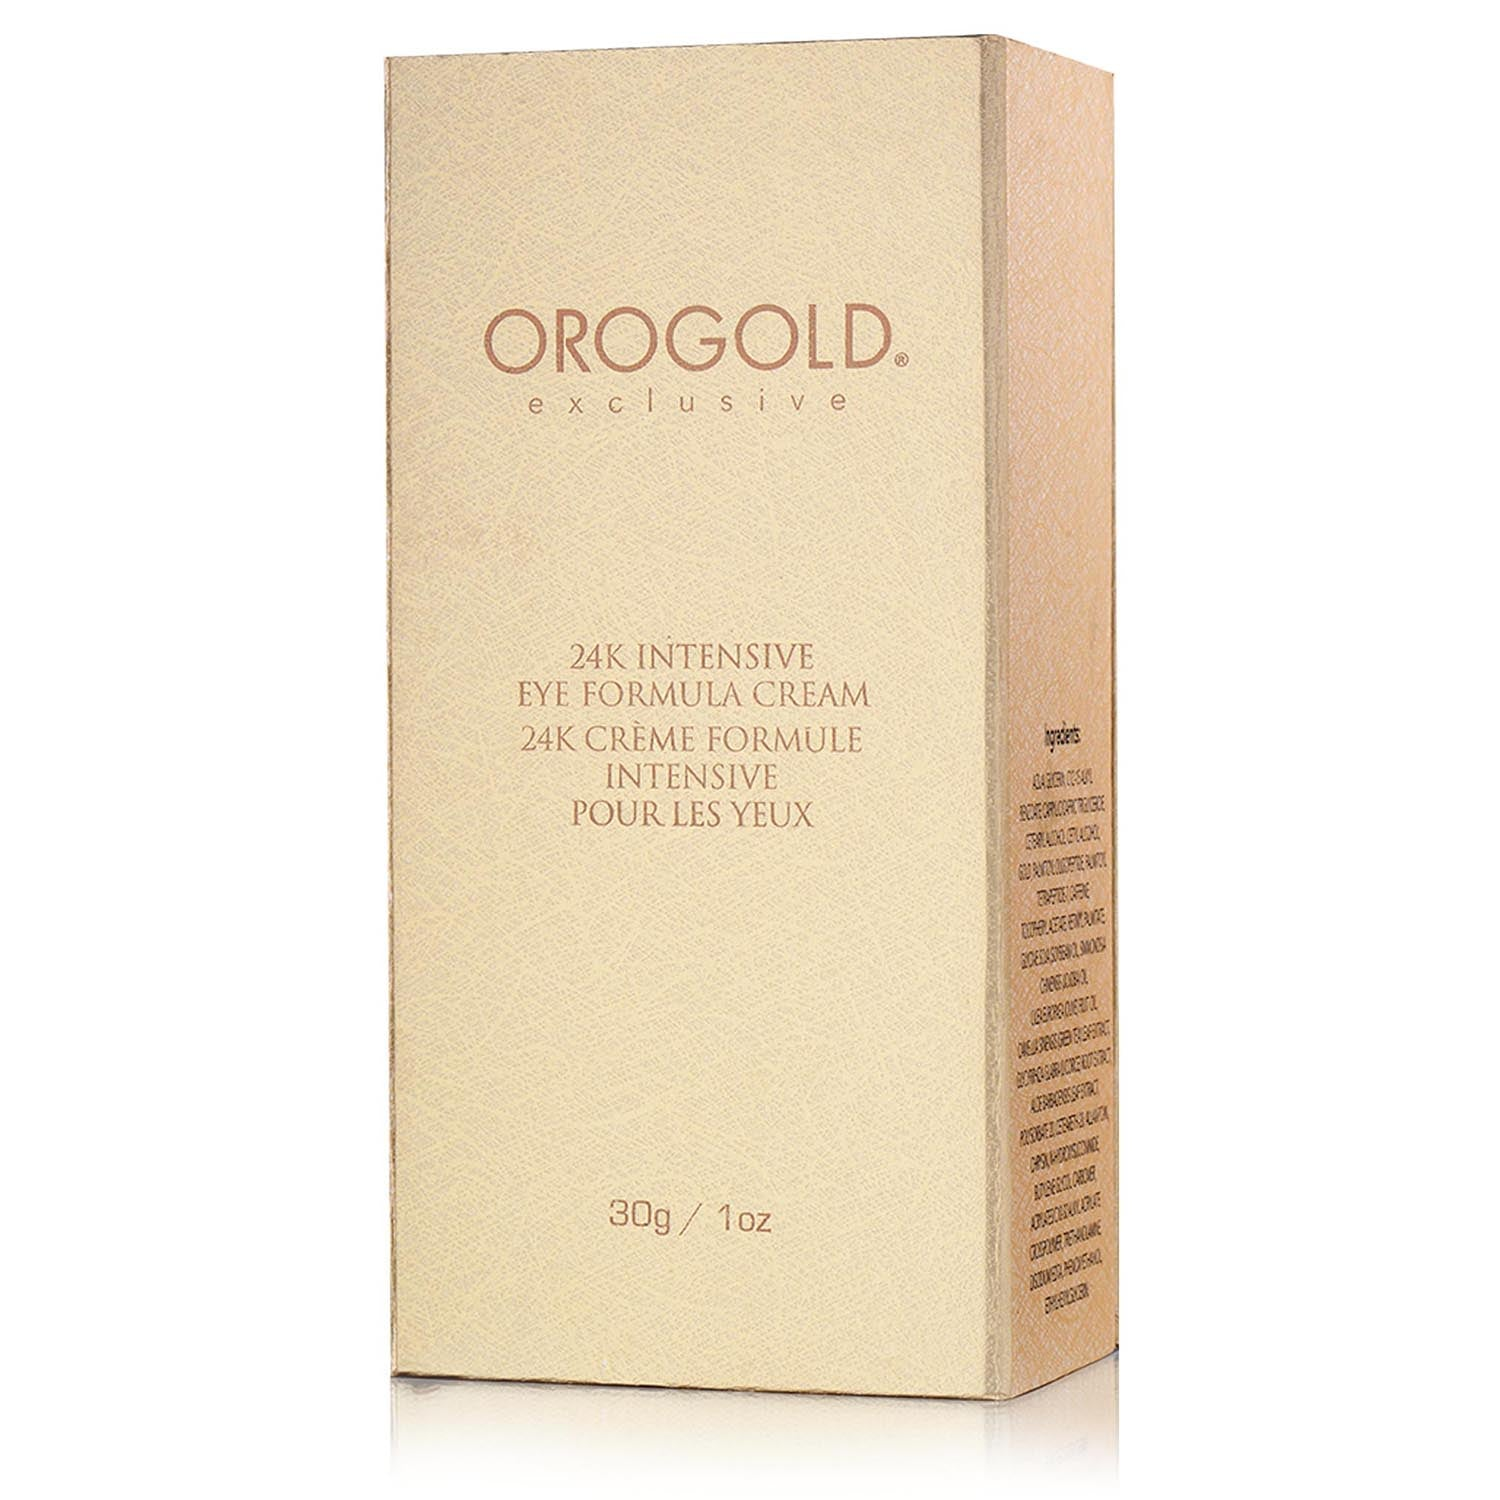 orogold under eye formula cream